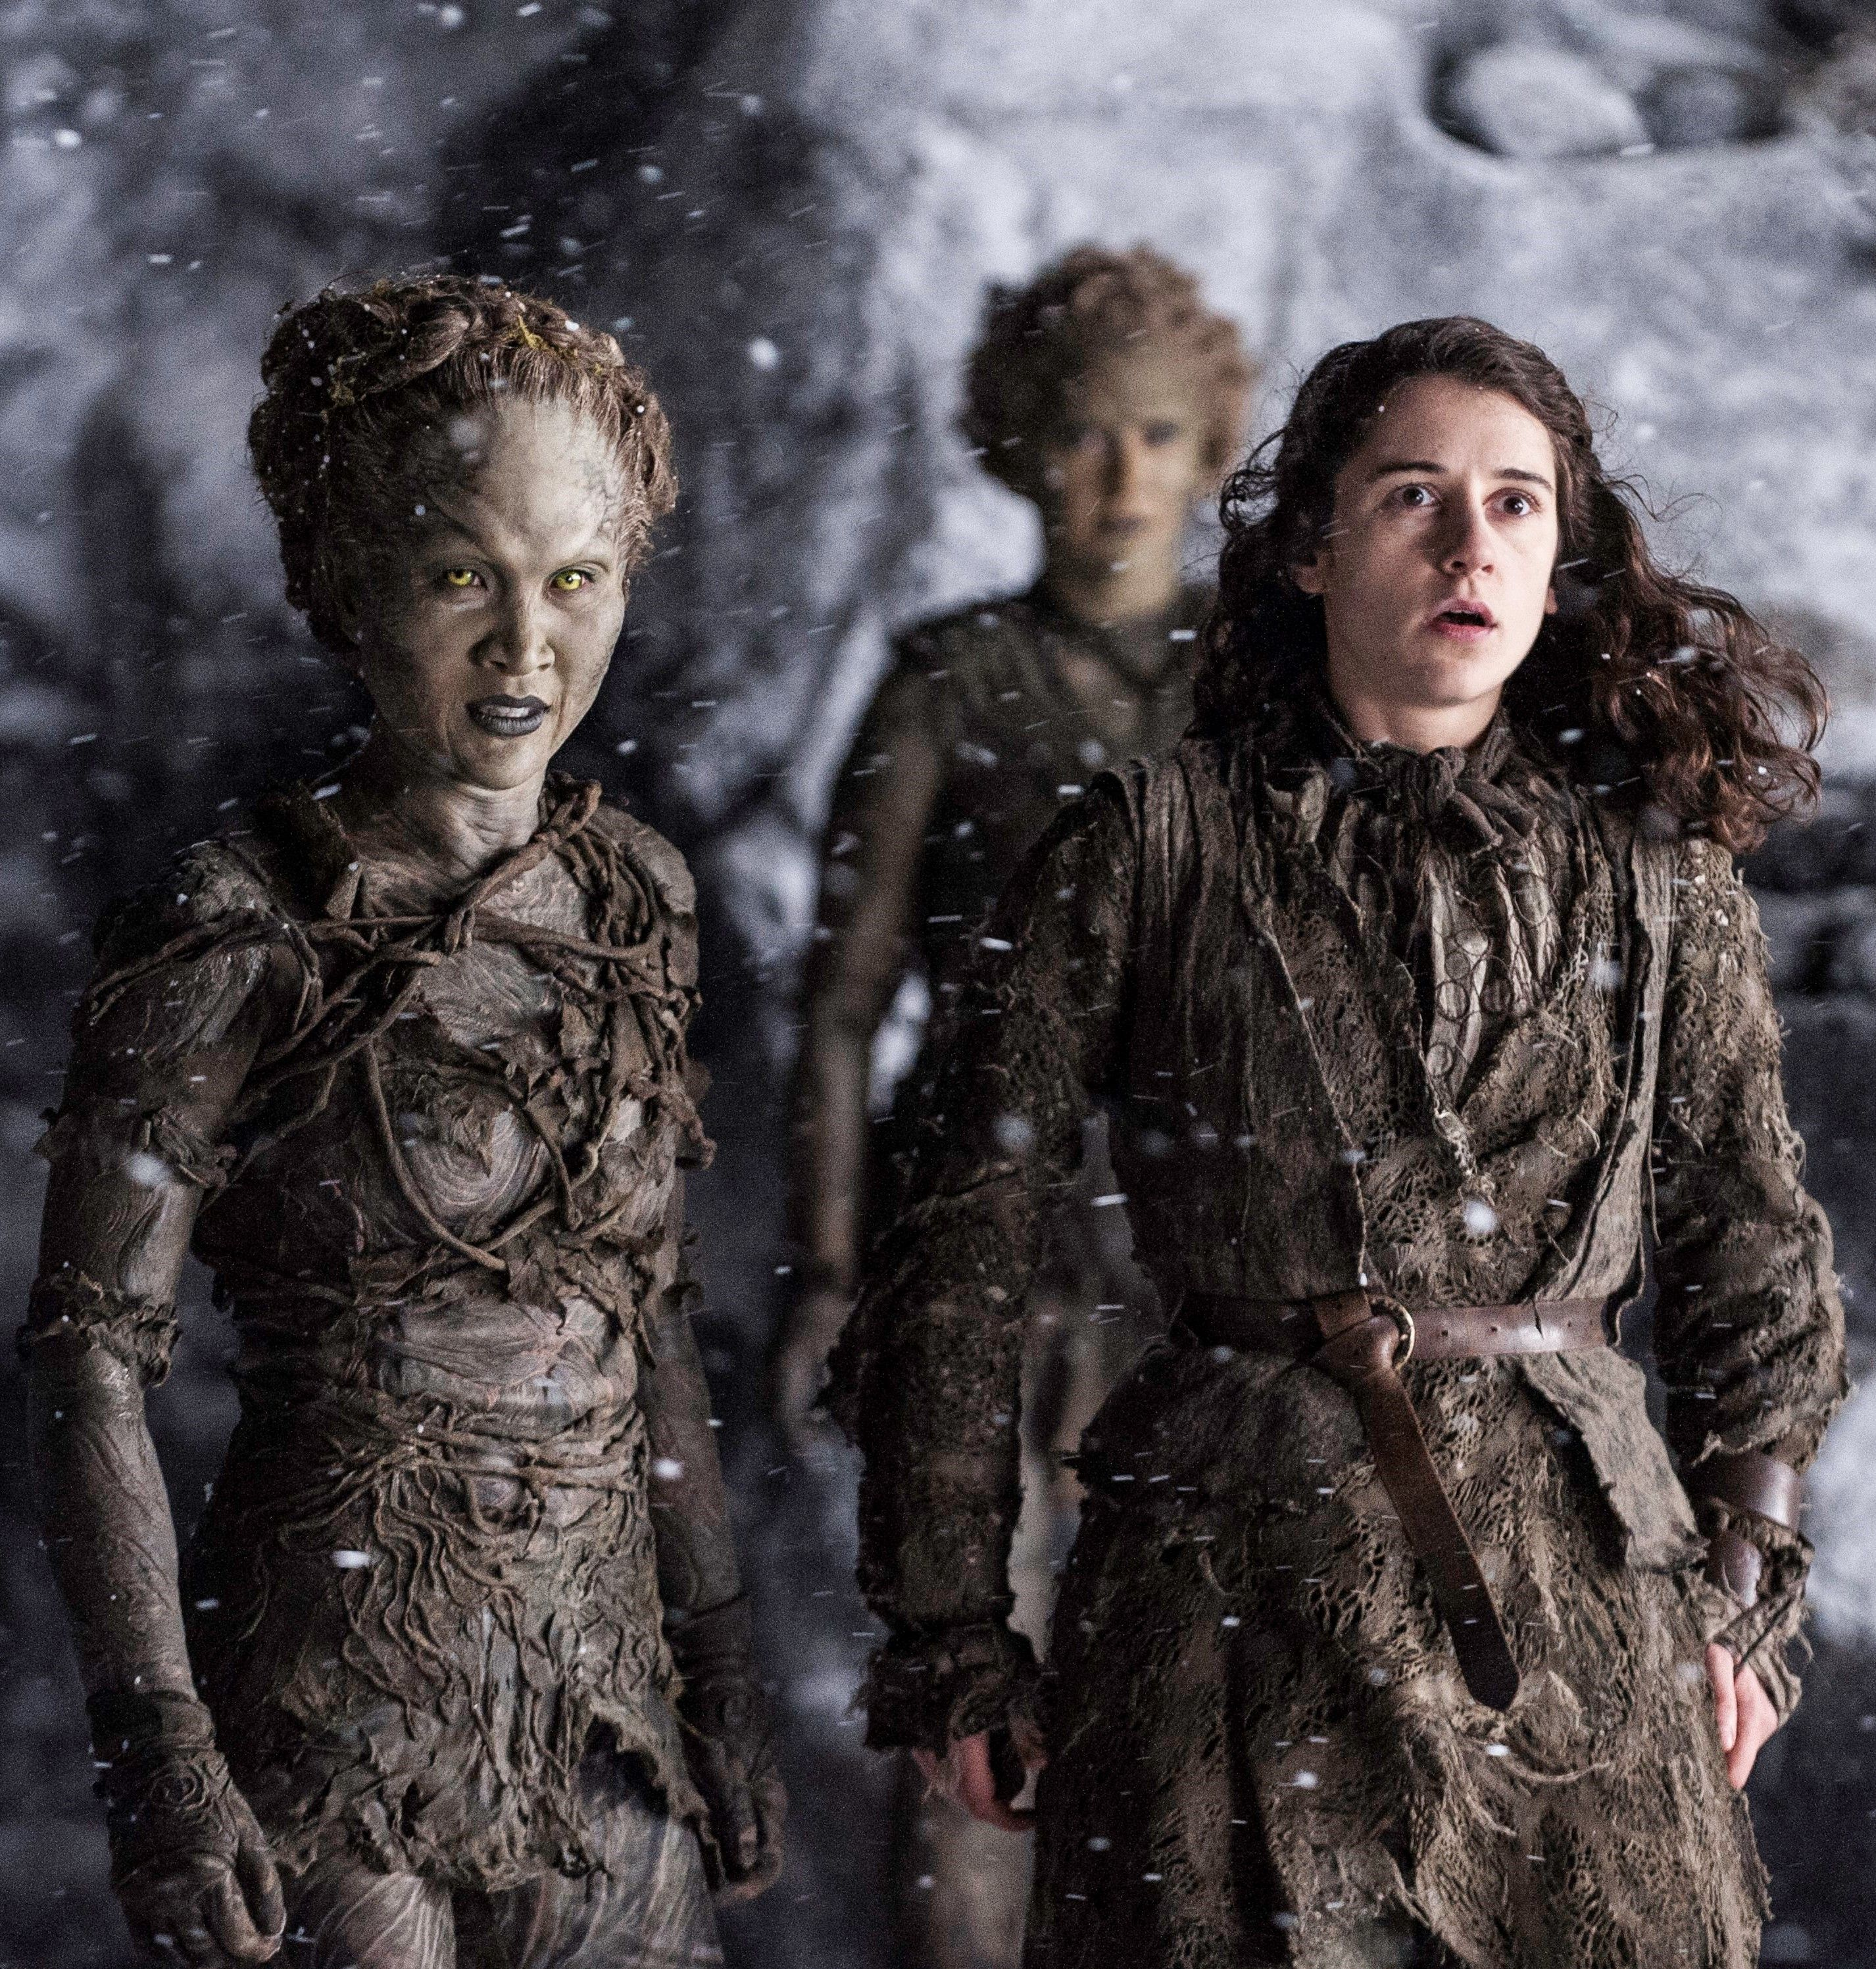 Warriors Fire And Ice Episode 4: Game Of Thrones: All The Pictures From Season 6